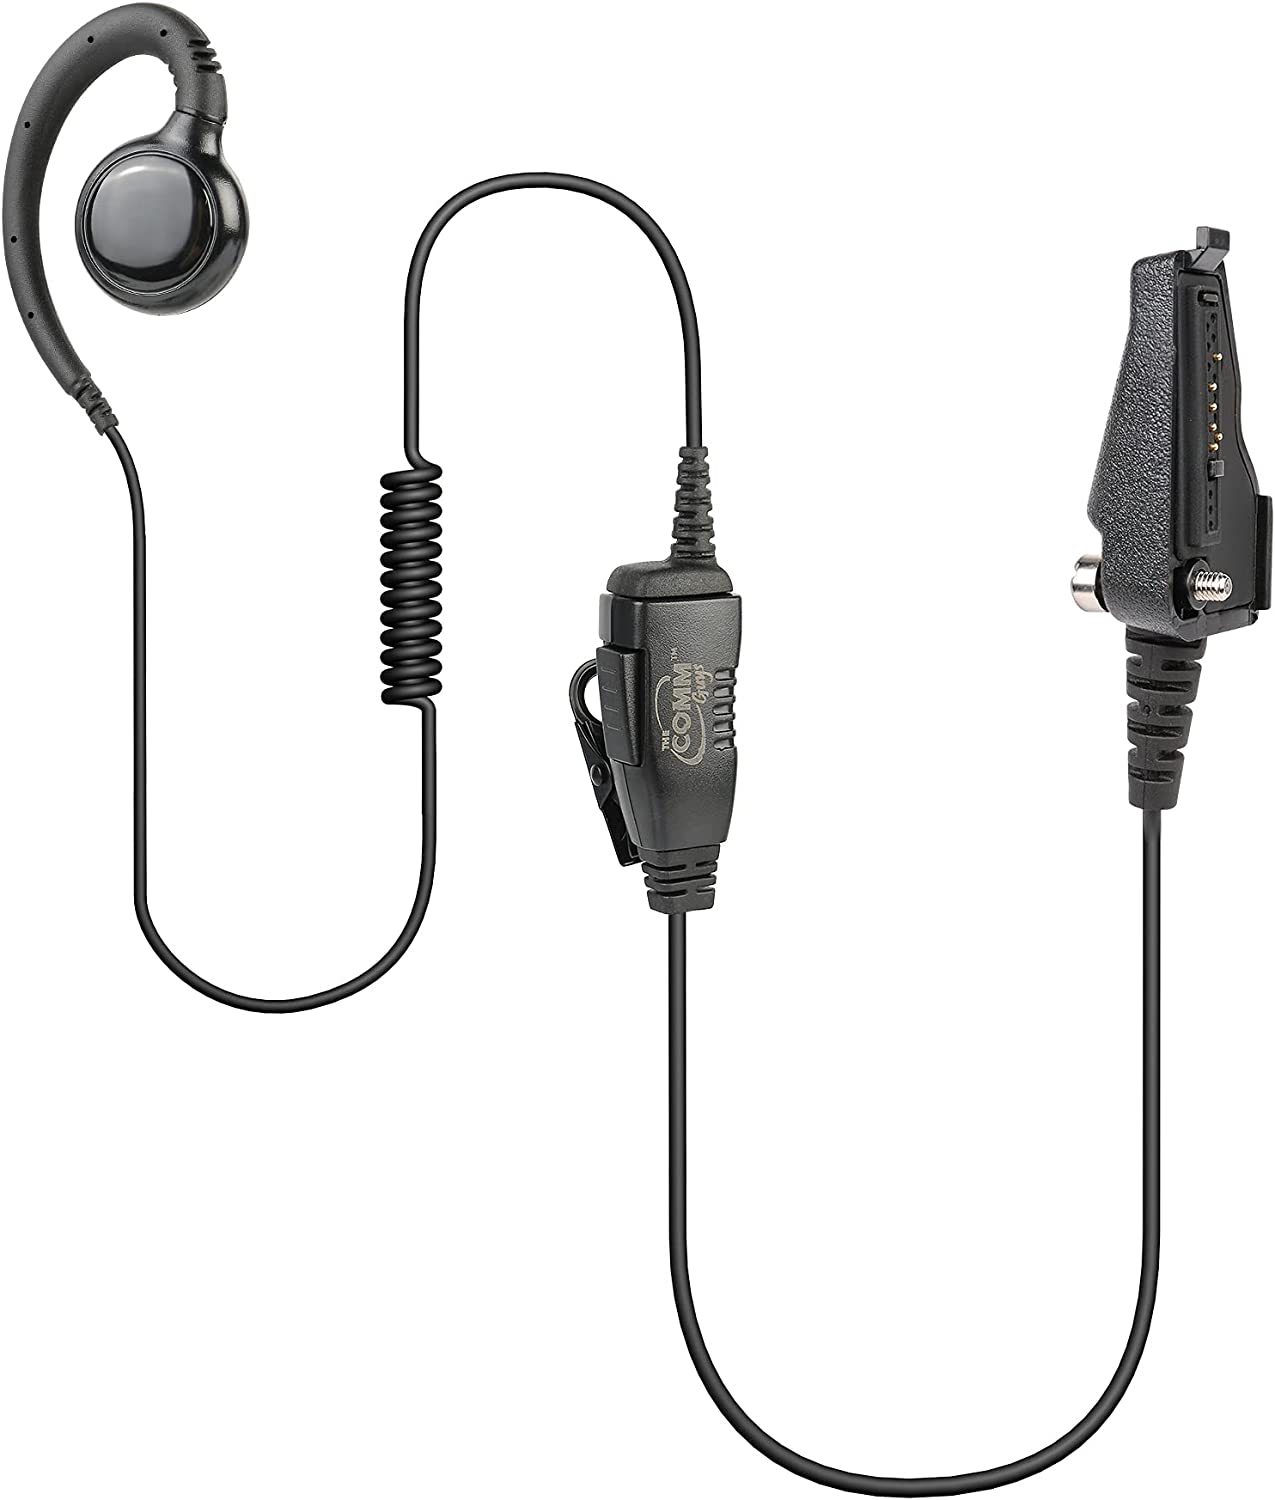 The Phoenix Mall Comm Purchase Guys 1-Wire Swivel Loop and Earpiece Mic Compa Headset